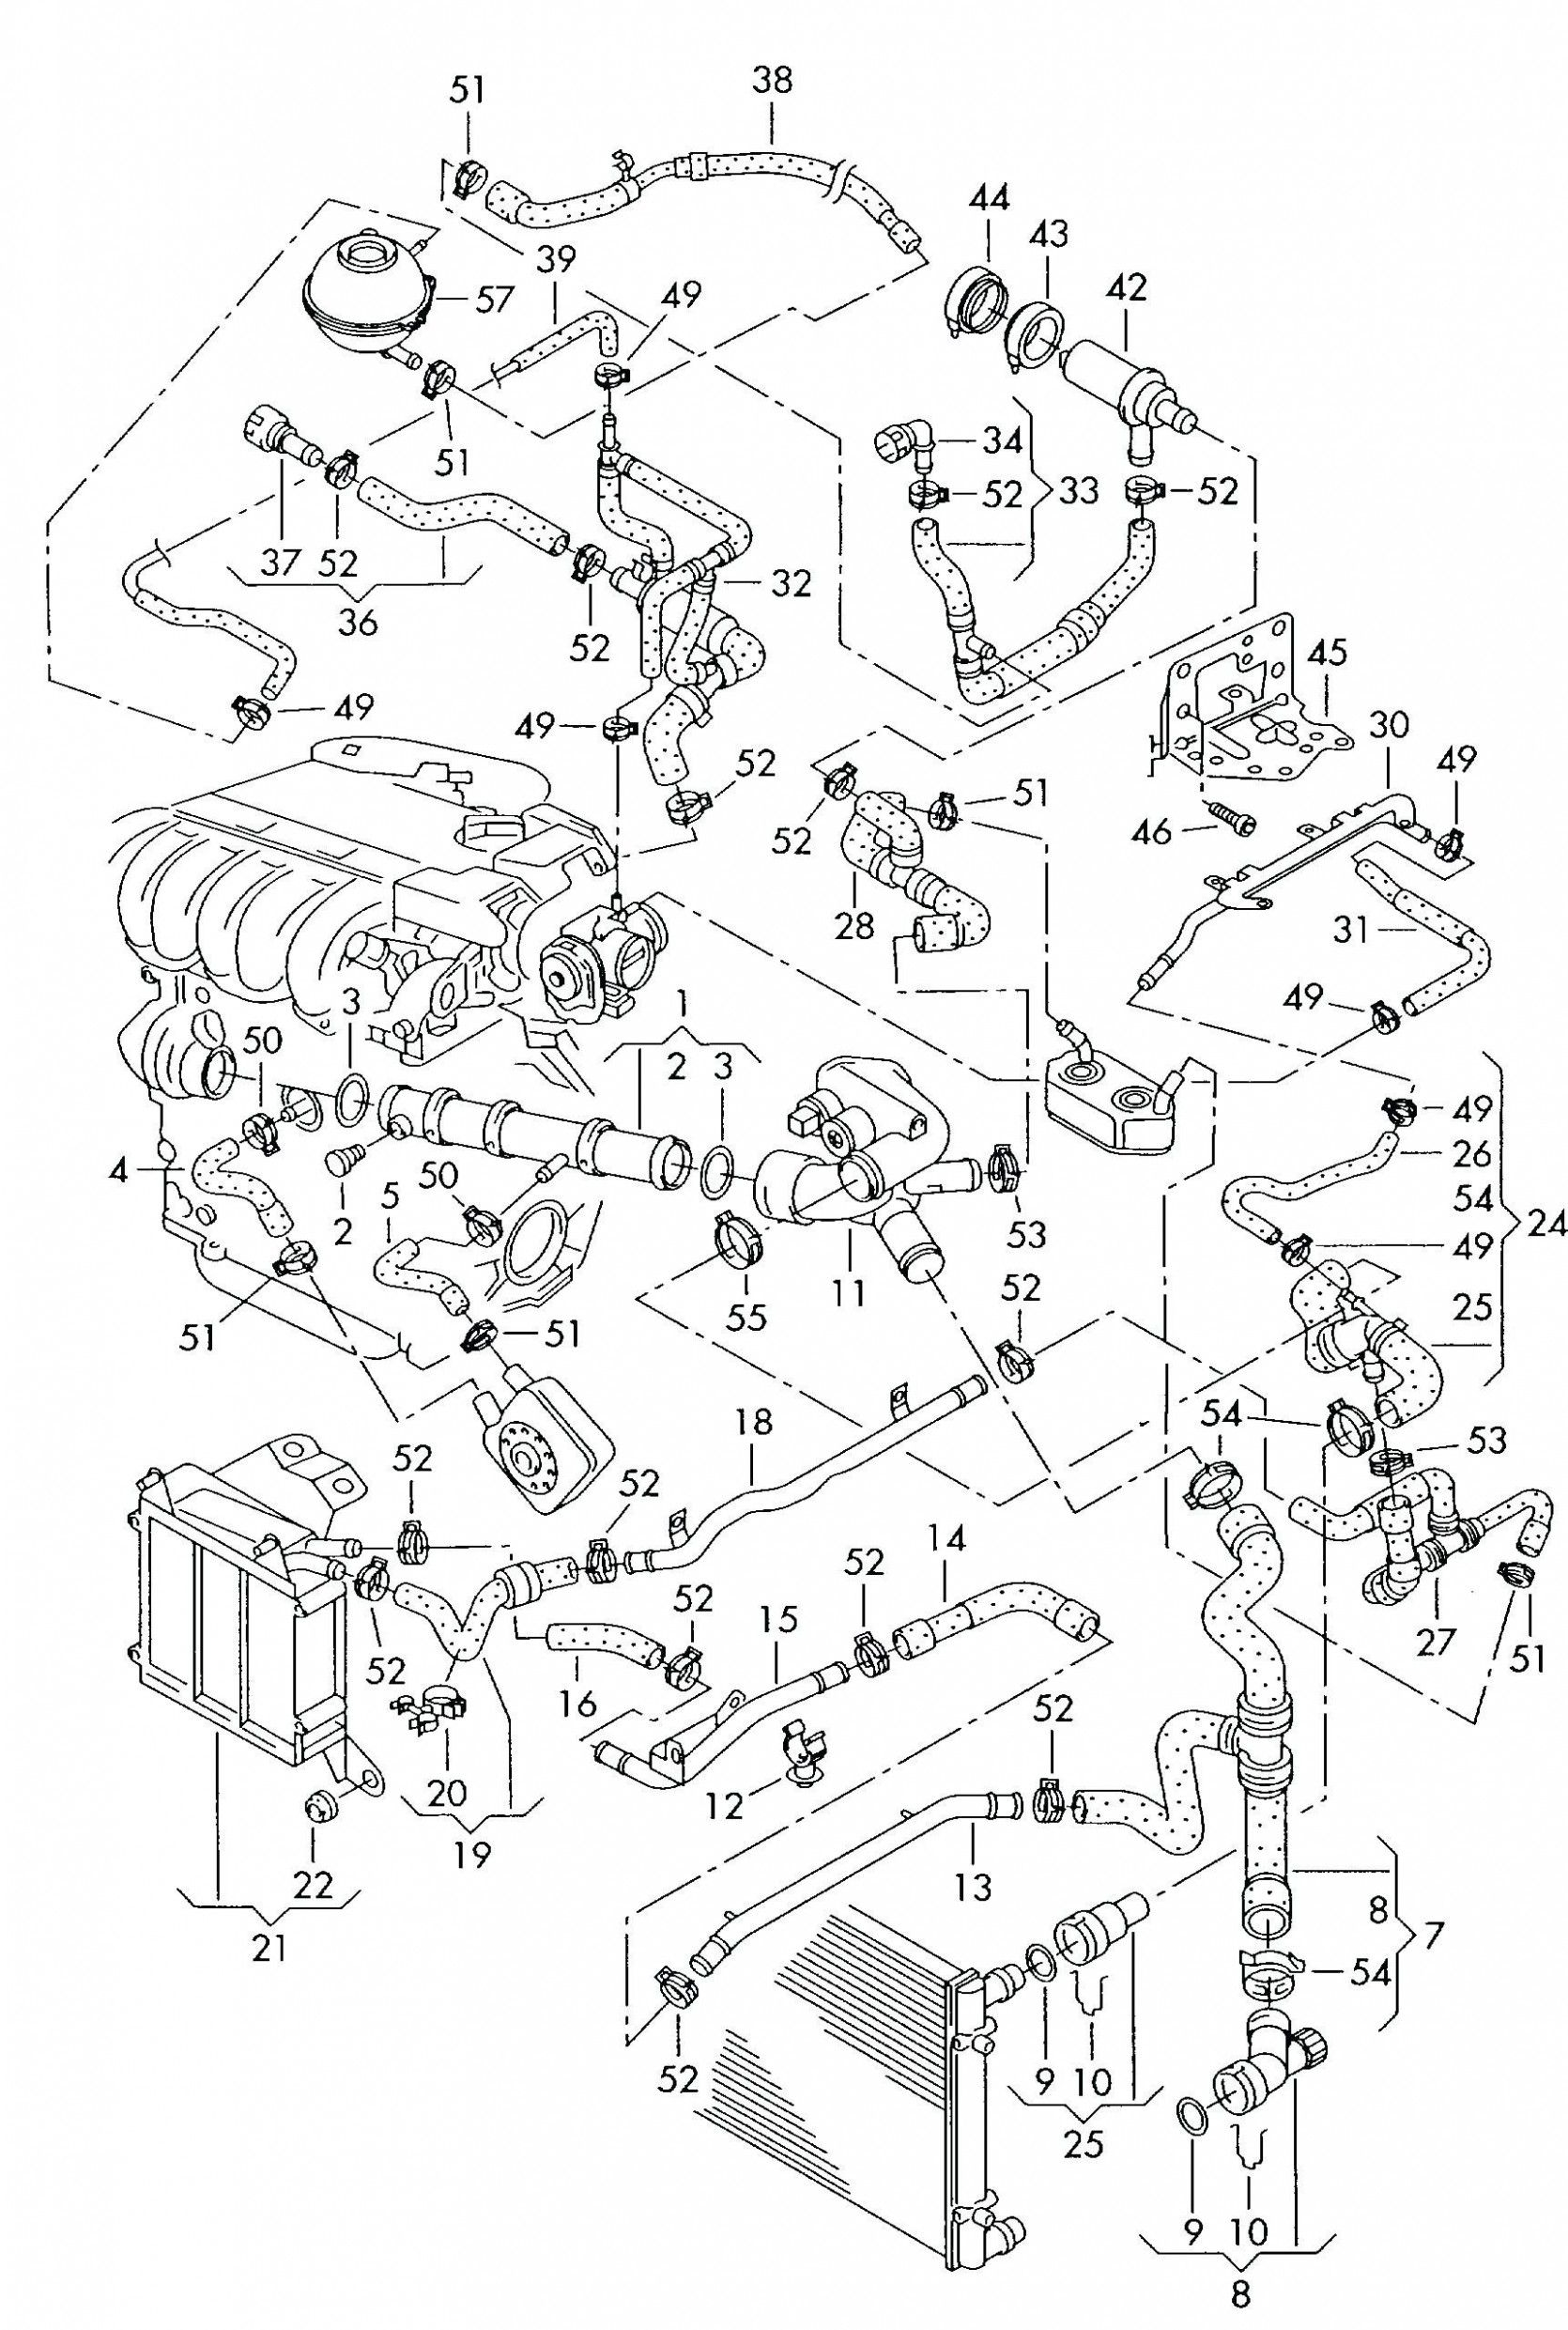 [SCHEMATICS_48YU]  2001 Vw Passat Engine Diagram - Data wiring diagram | 1998 Vw Passat 2 0 Engine Diagram |  | atinox-soudure.fr